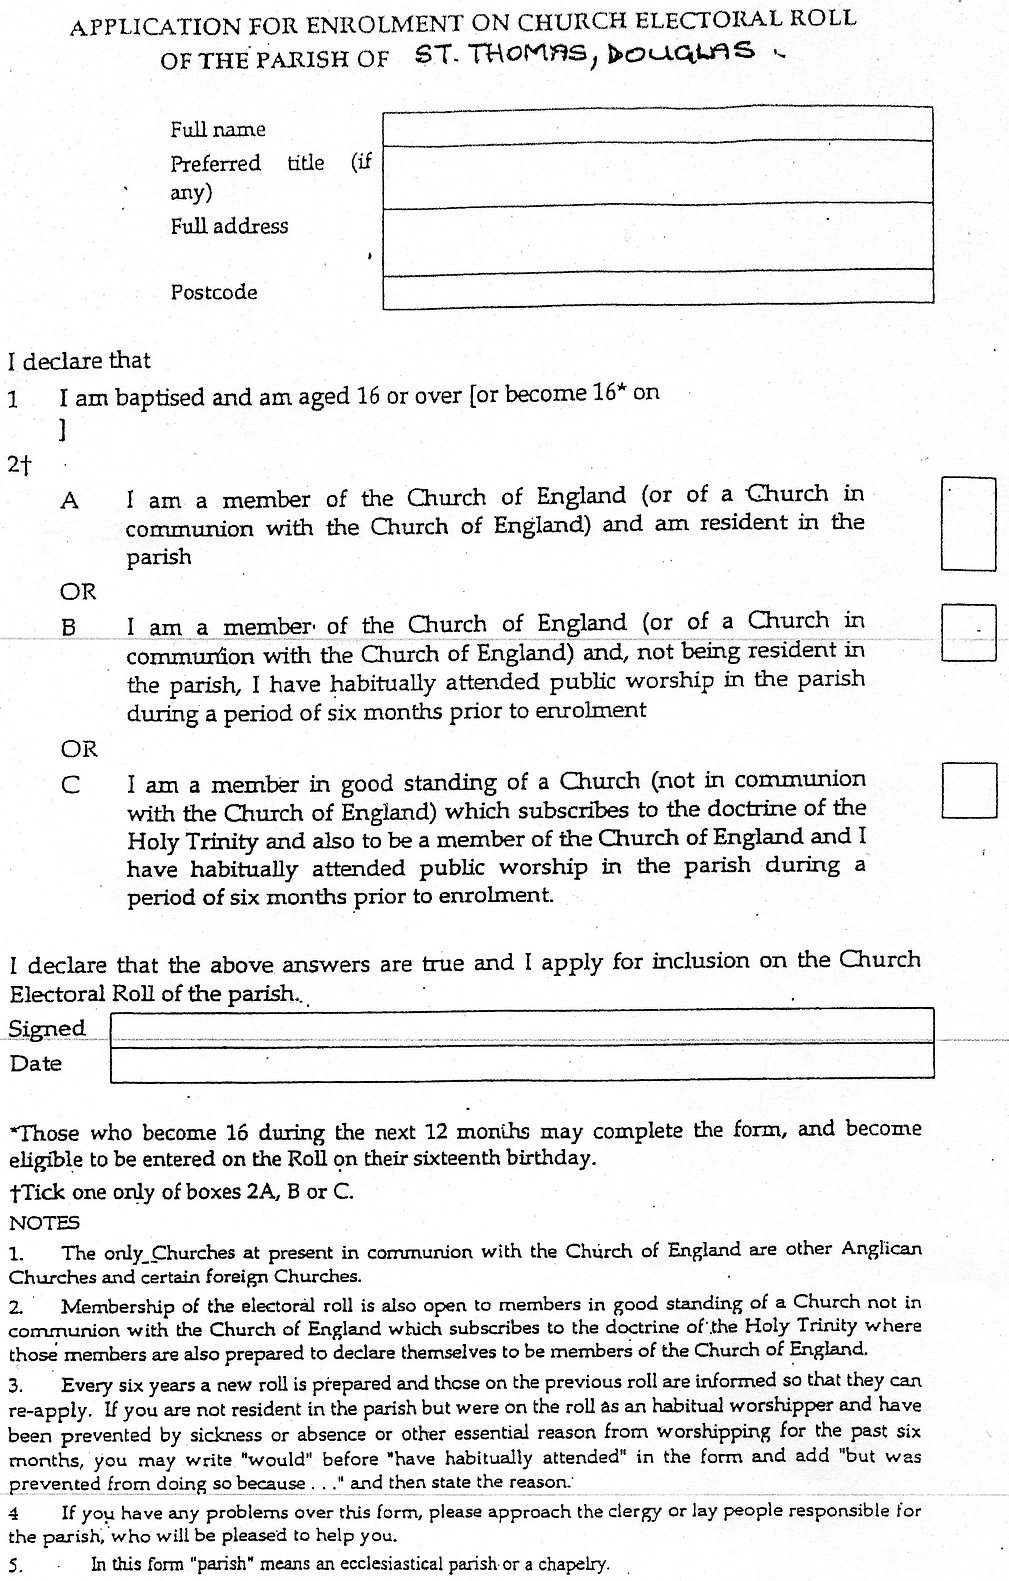 Church Electoral Roll Form_edited.jpg